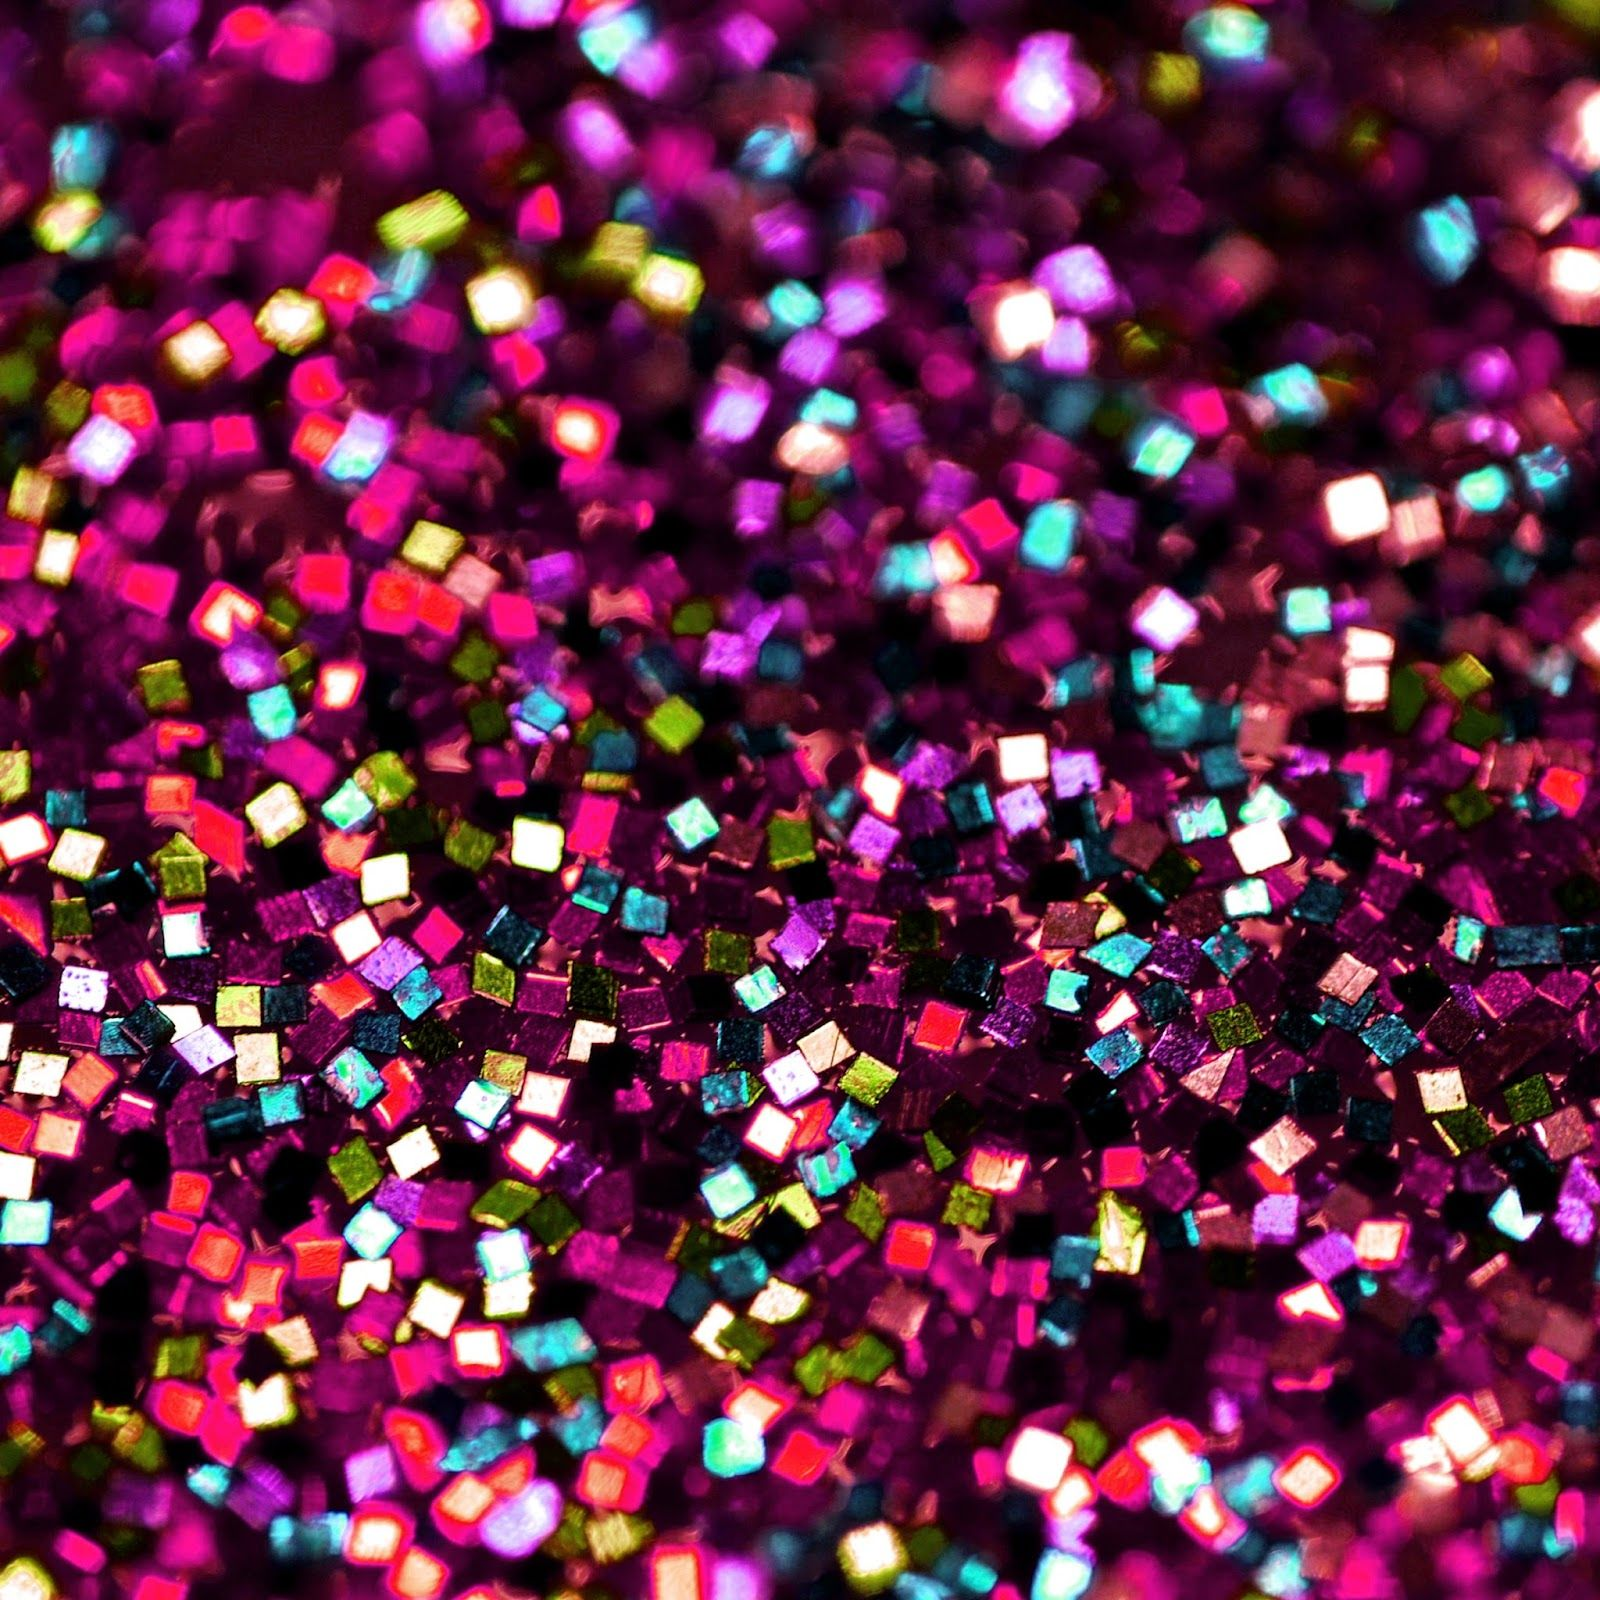 colorful glitter wallpaper ndash - photo #21